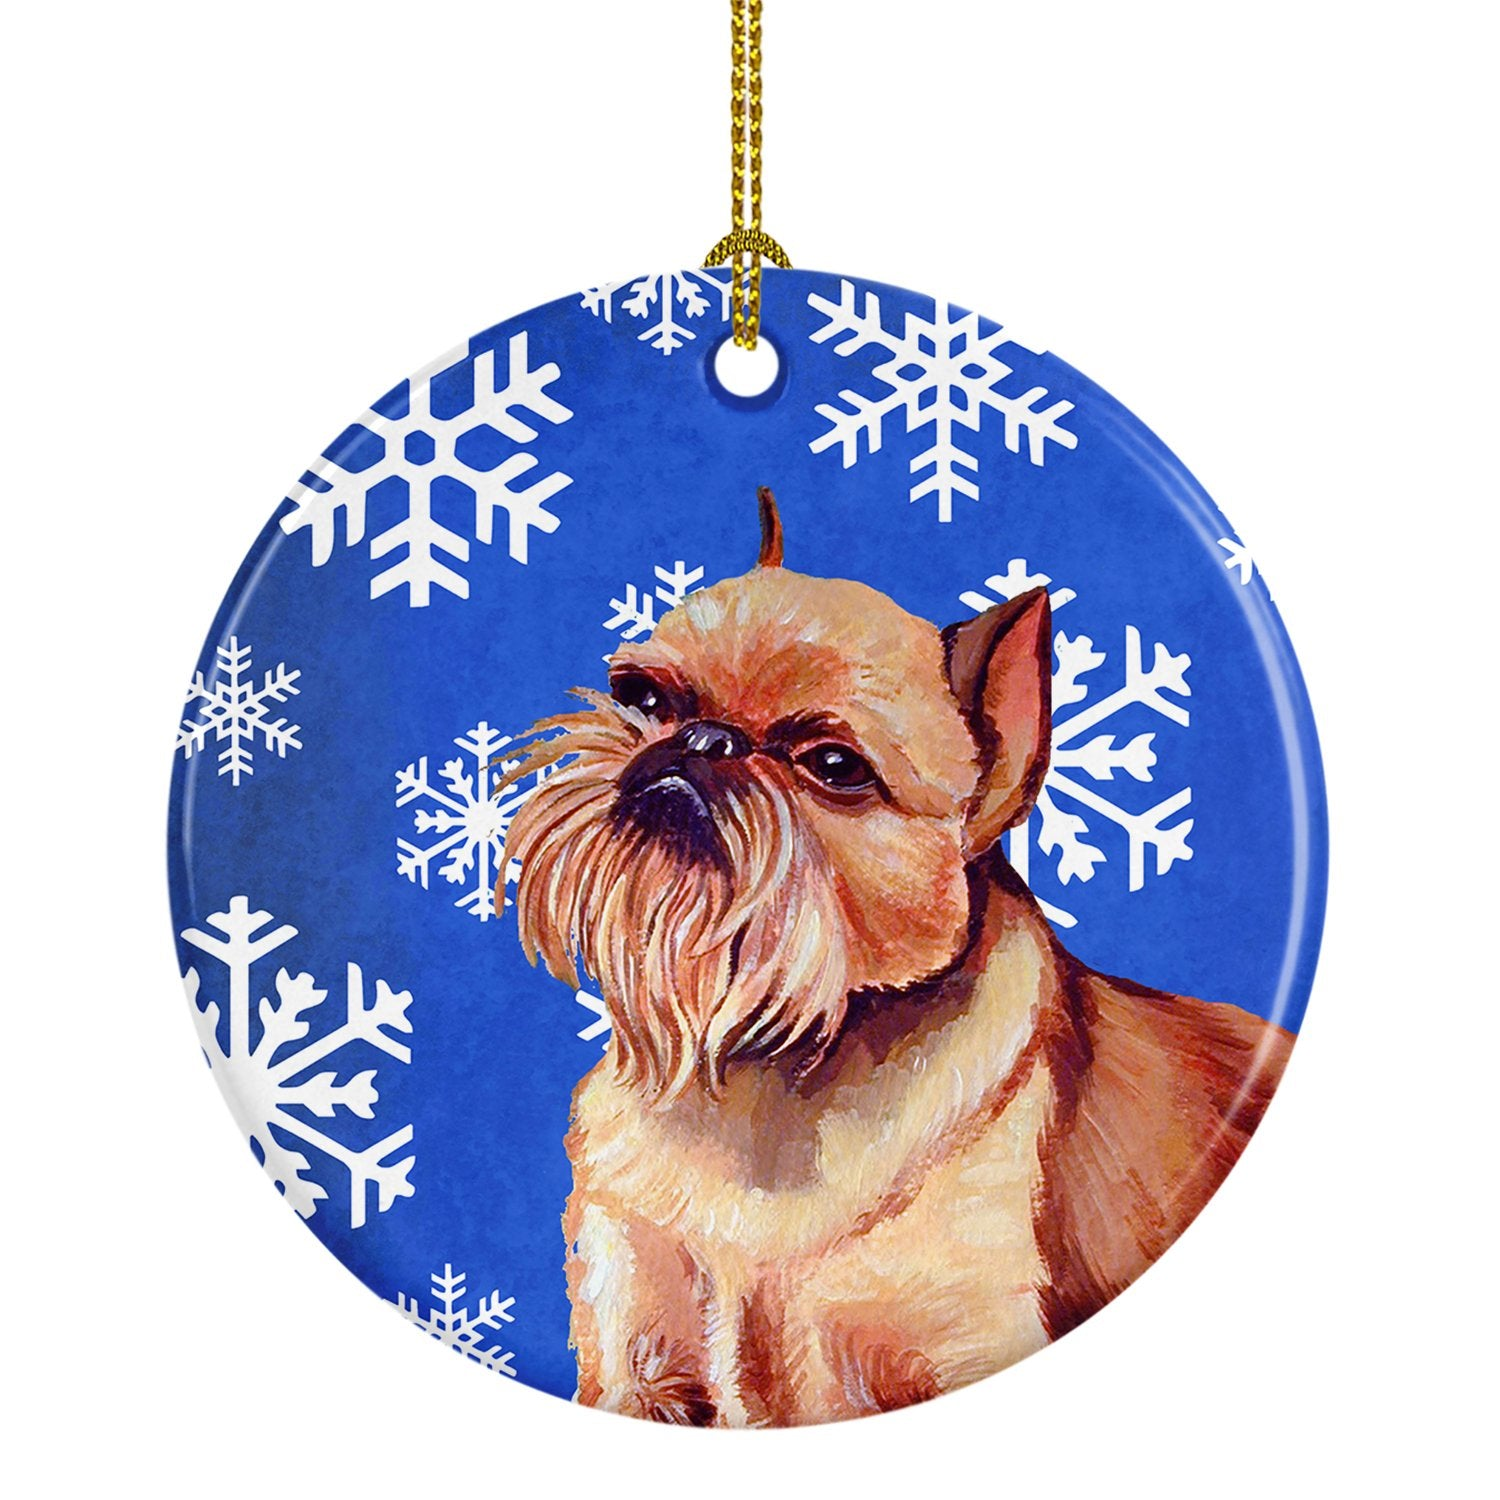 Brussels Griffon Winter Snowflake Holiday Ceramic Ornament LH9269 by Caroline's Treasures